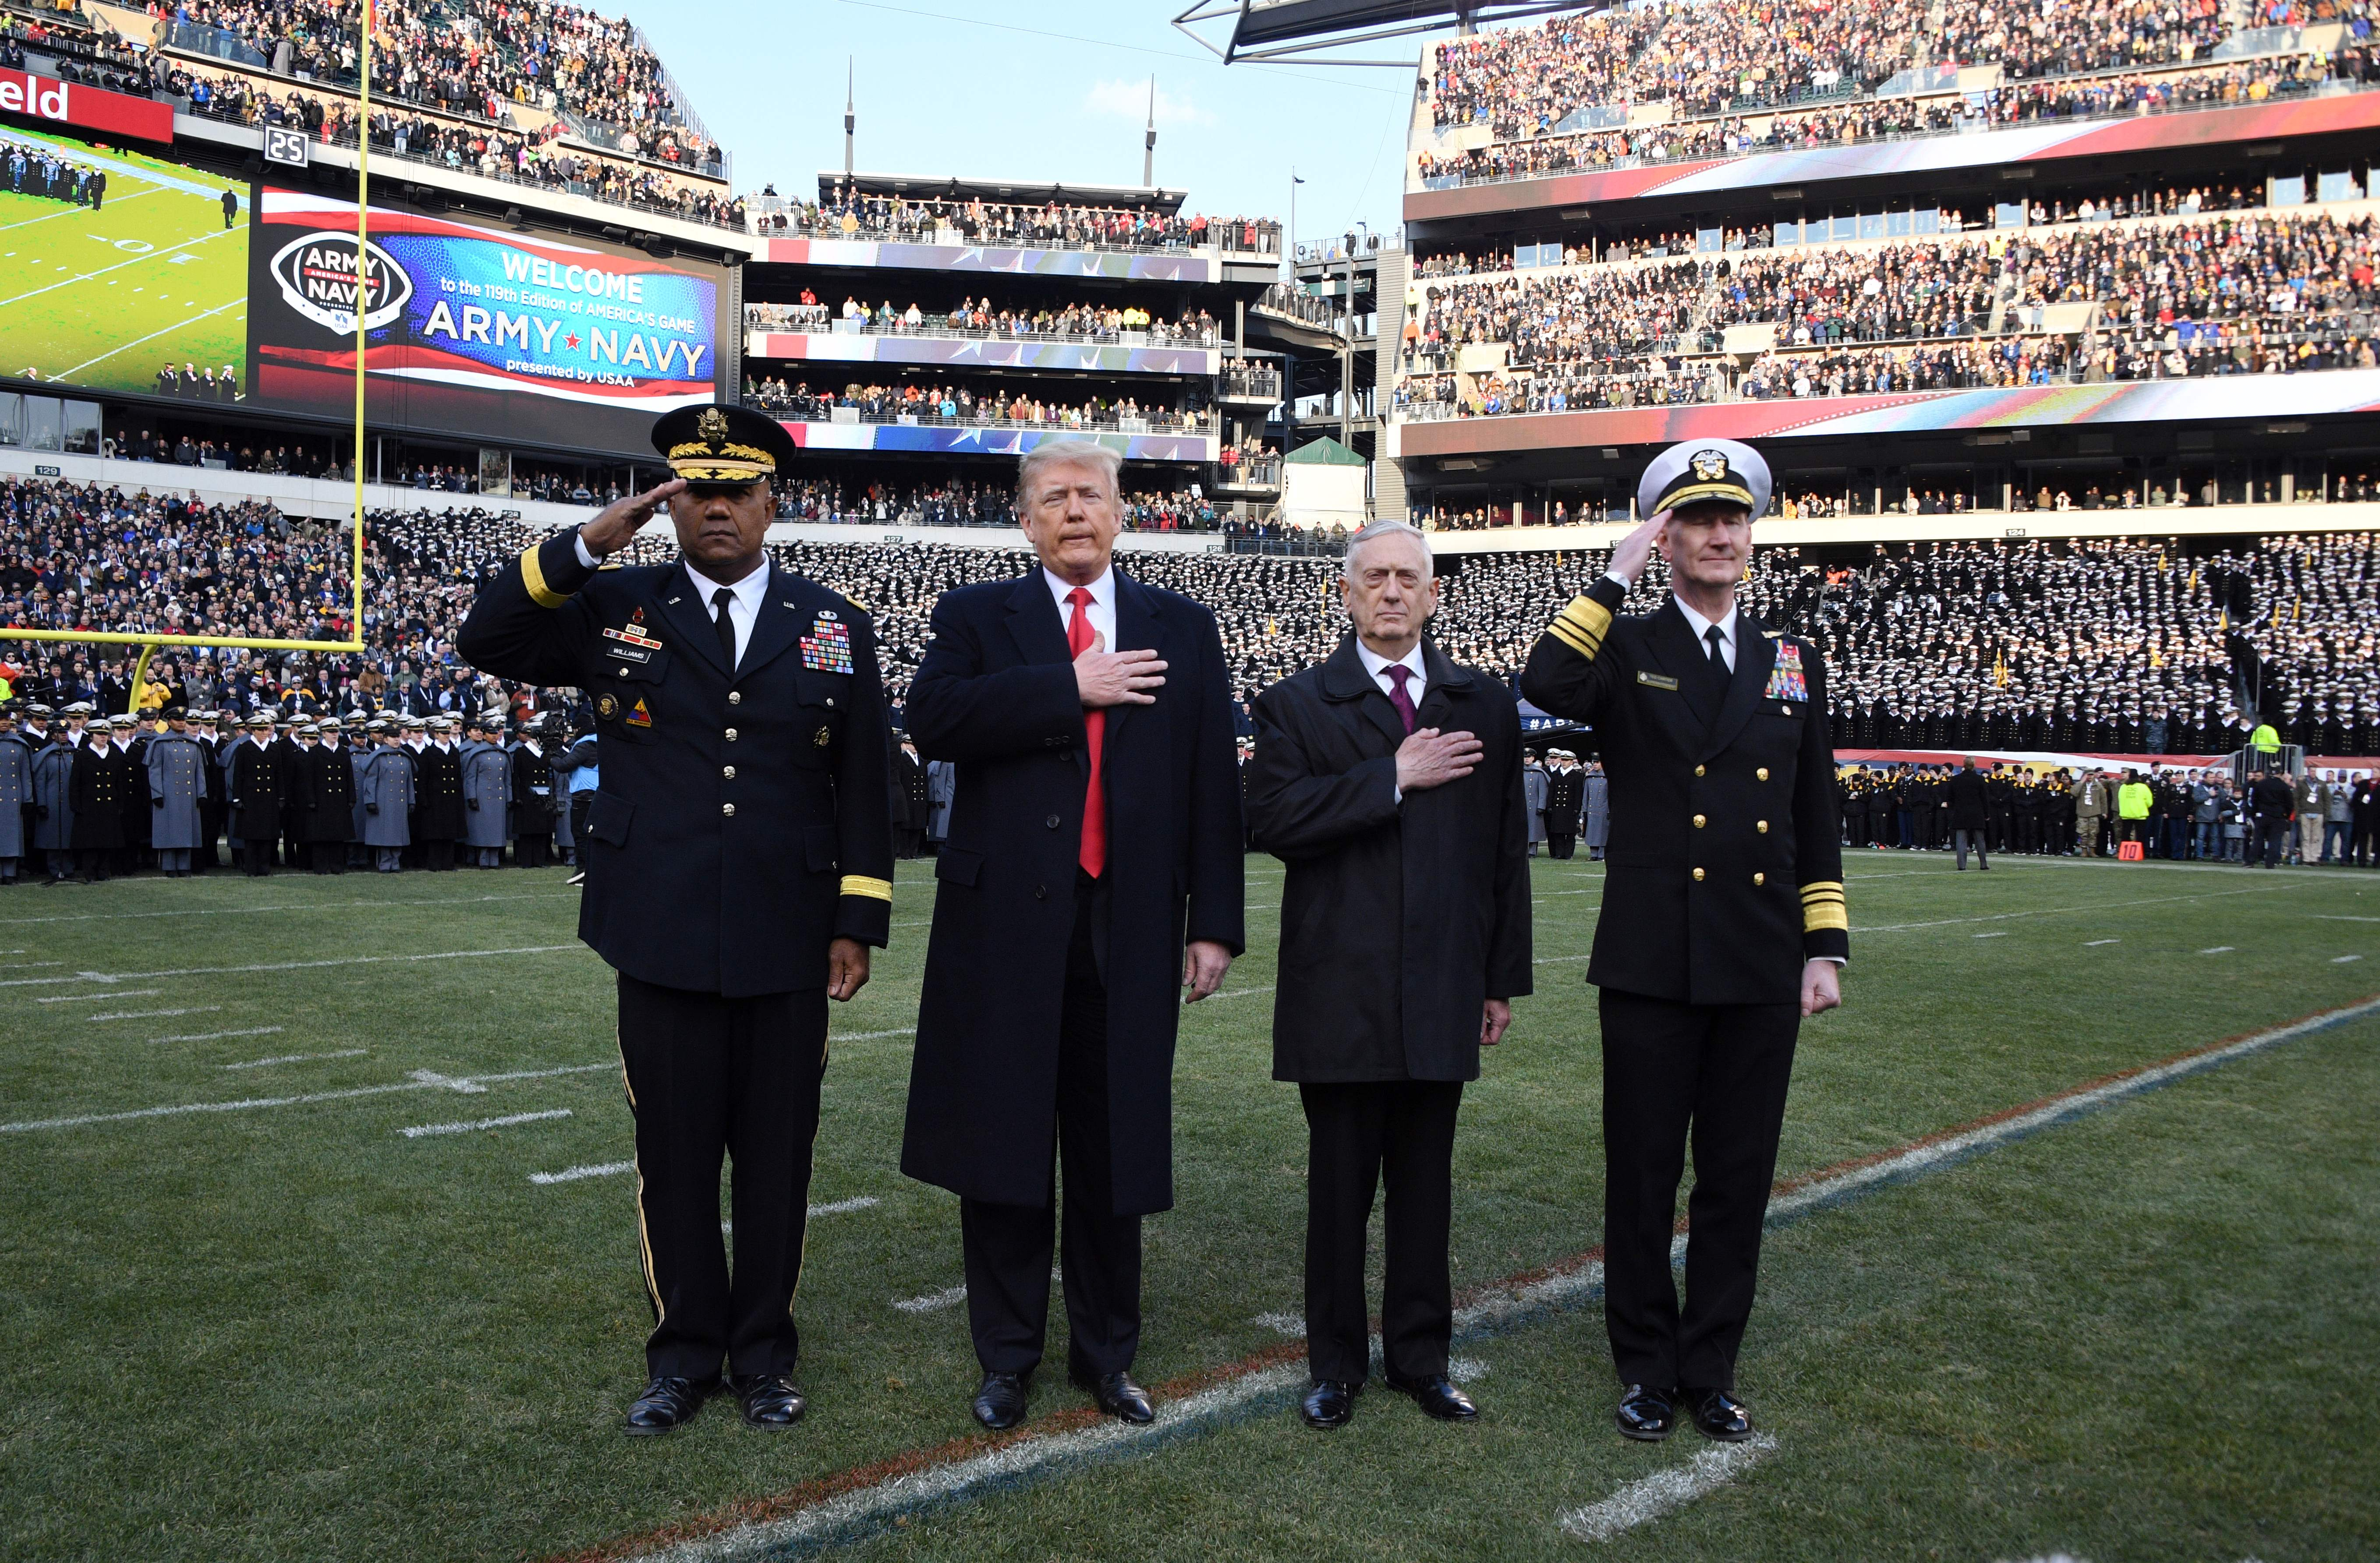 US President Donald Trump (2nd-L) and US Defense Secretary Jim Mattis (2nd-R) attend the annual Army-Navy football game at Lincoln Financial Field in Philadelphia, Pennsylvania, December 8, 2018. - Trump will officiate the coin toss at Lincoln Financial Field in Philadelphia between the Army Black Knights of the US Military Academy (USMA) and the Navy Midshipmen of the US Naval Academy (USNA). (Photo by Jim WATSON / AFP) (JIM WATSON/AFP via Getty Images)